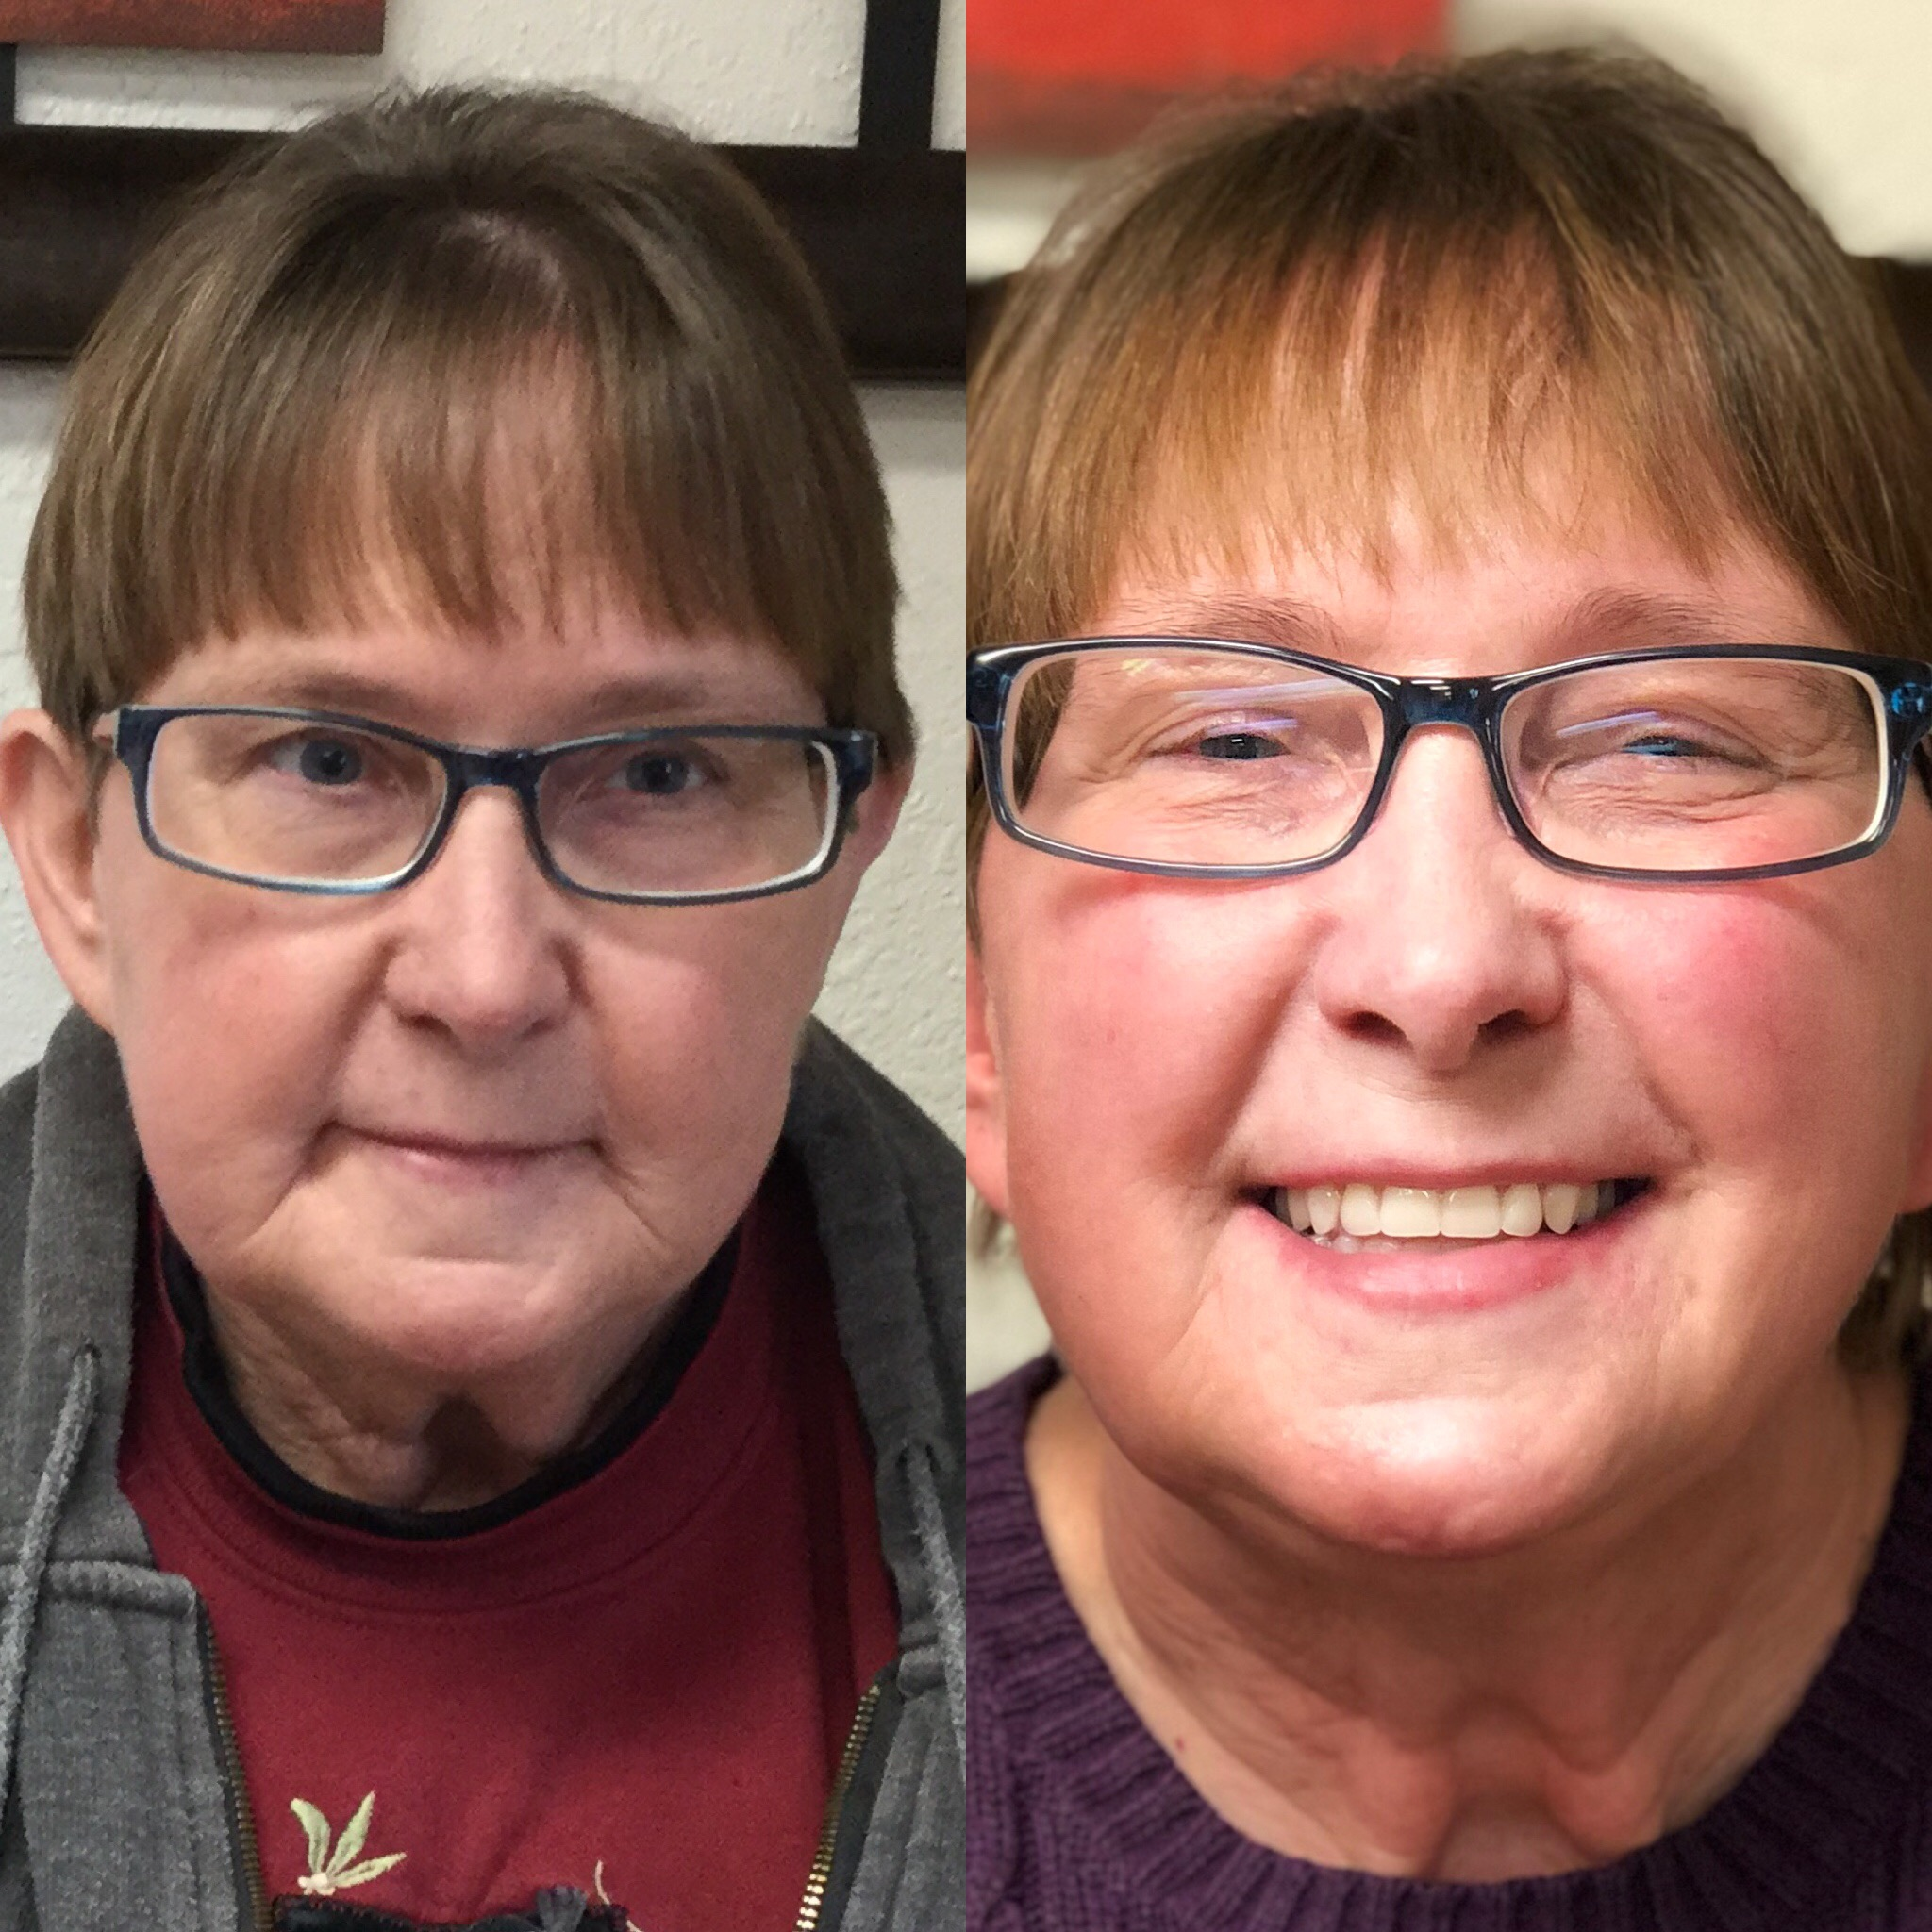 Dee Martin - Josh and John are the very best!!! They both have wonderful personalities!! They care about your dentures and make sure they fit perfectly. My new dentures gave me back my smile that I had always tried to hide with bad teeth. I can't thank Josh and John enough!!